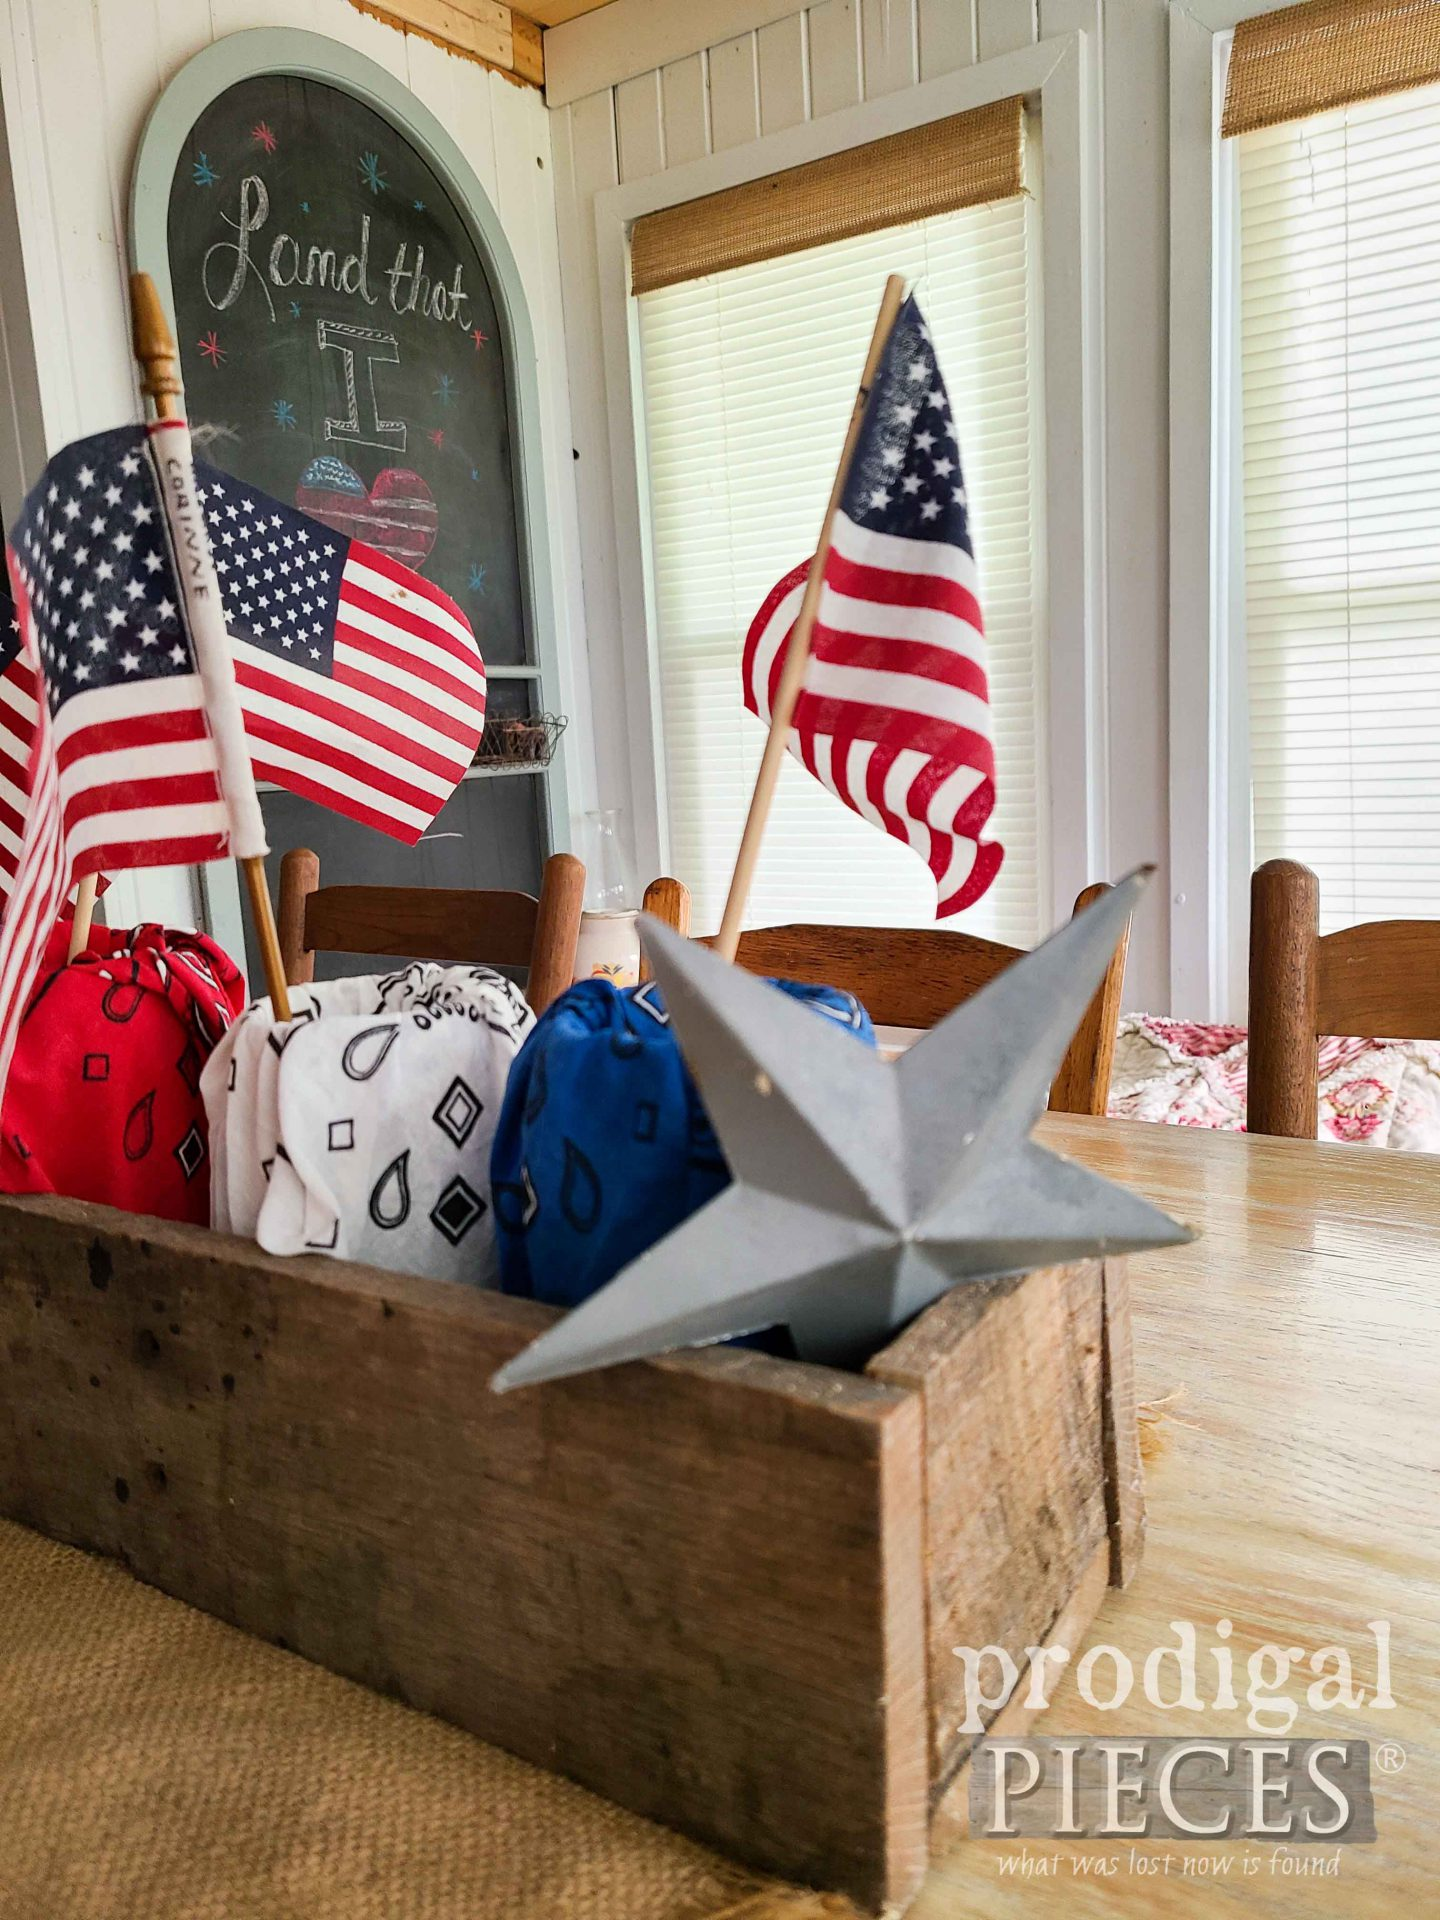 Rustic Farmhouse Patriotic Decor with Refashioned Bandanas for Independence Day Celebrations by Larissa of Prodigal Pieces | prodigalpieces.com #prodigalpieces #farmhouse #godblesstheusa #4thofjuly